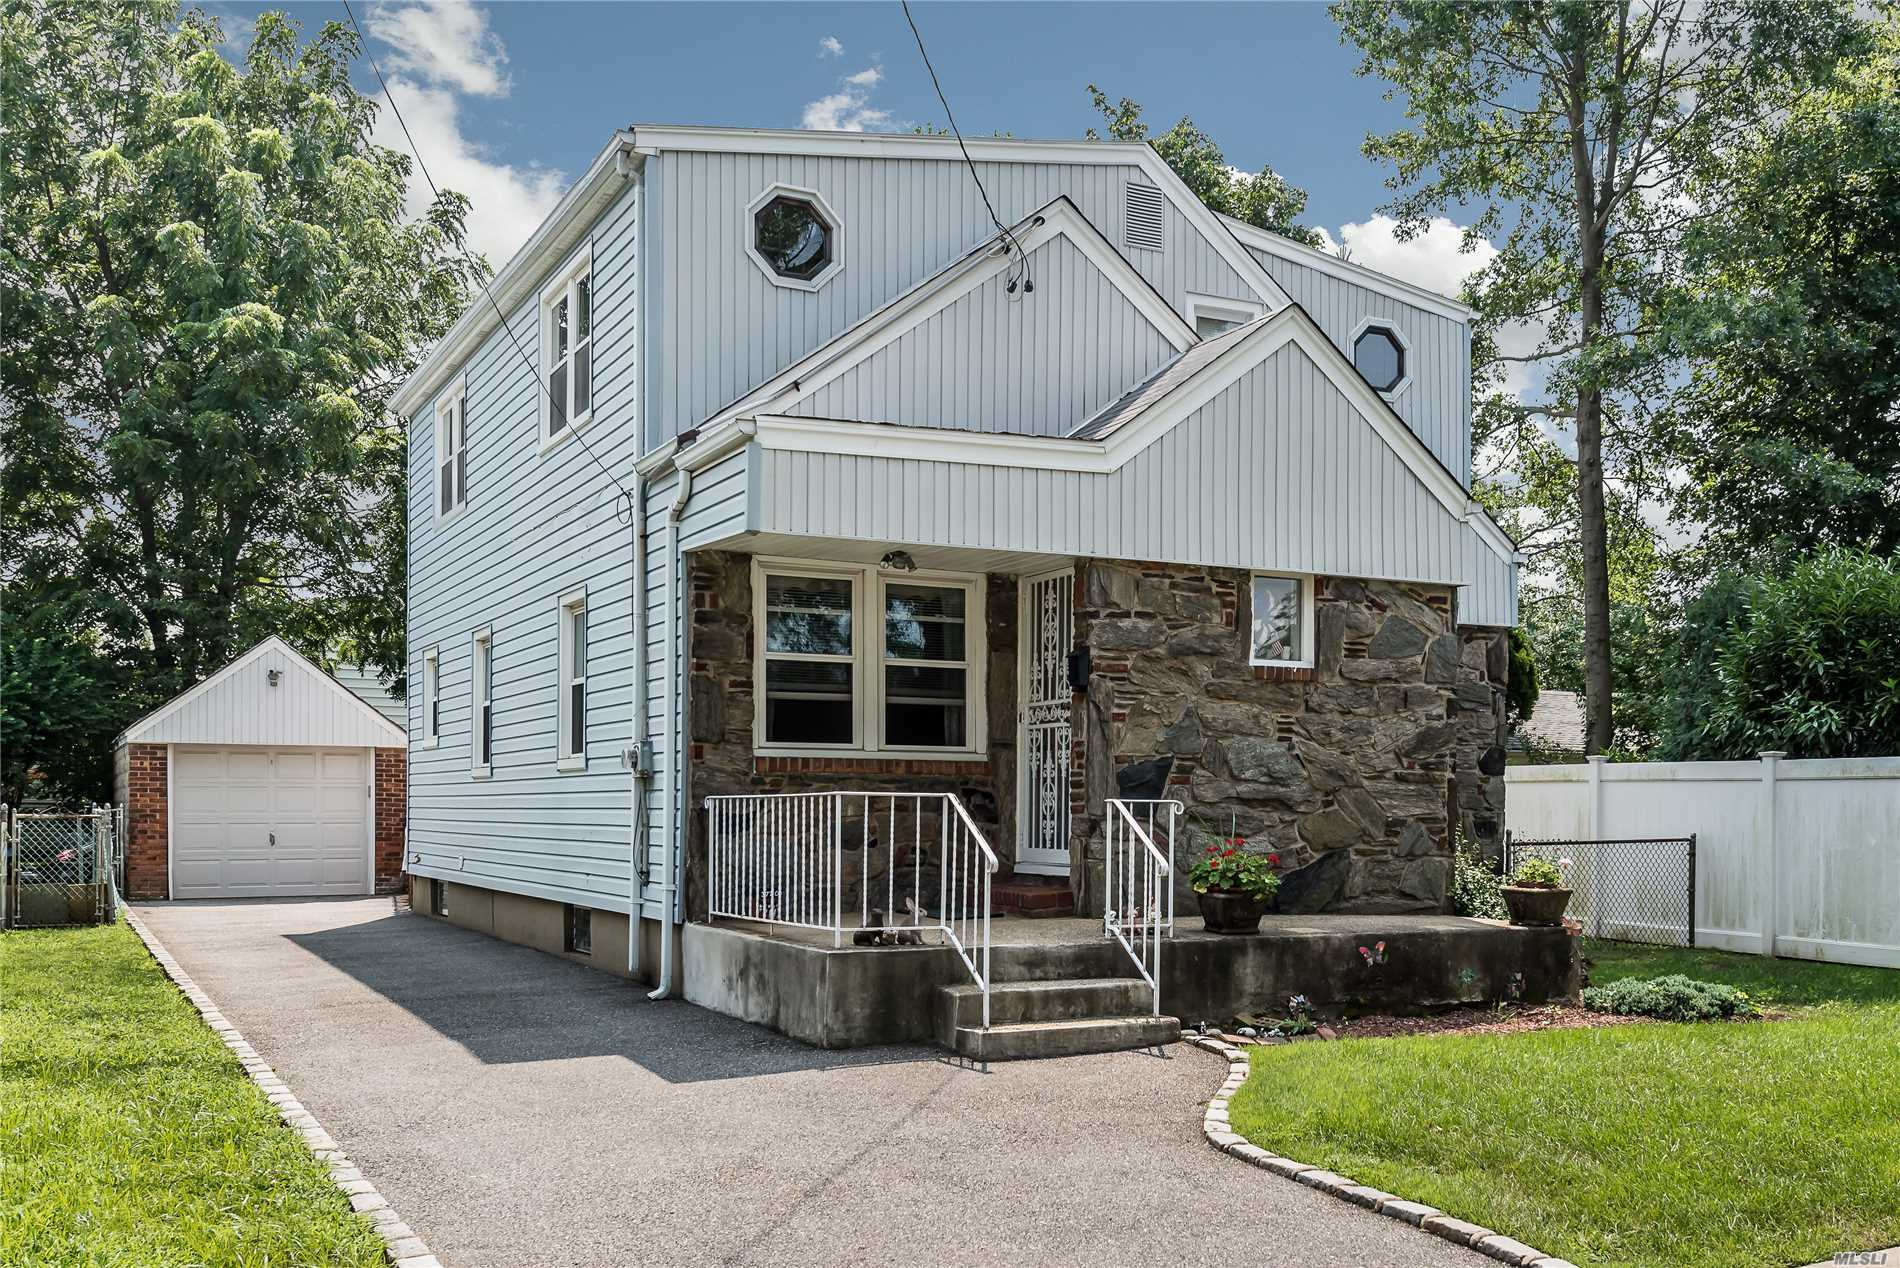 Dormered Cape On Dead End Street. Four Bedrooms, Two Full Baths, Finished Basement, Master On First Floor. 2 Large Bedrooms On Second Floor With A Large Sitting Room. Many Possibilities For Large Family.